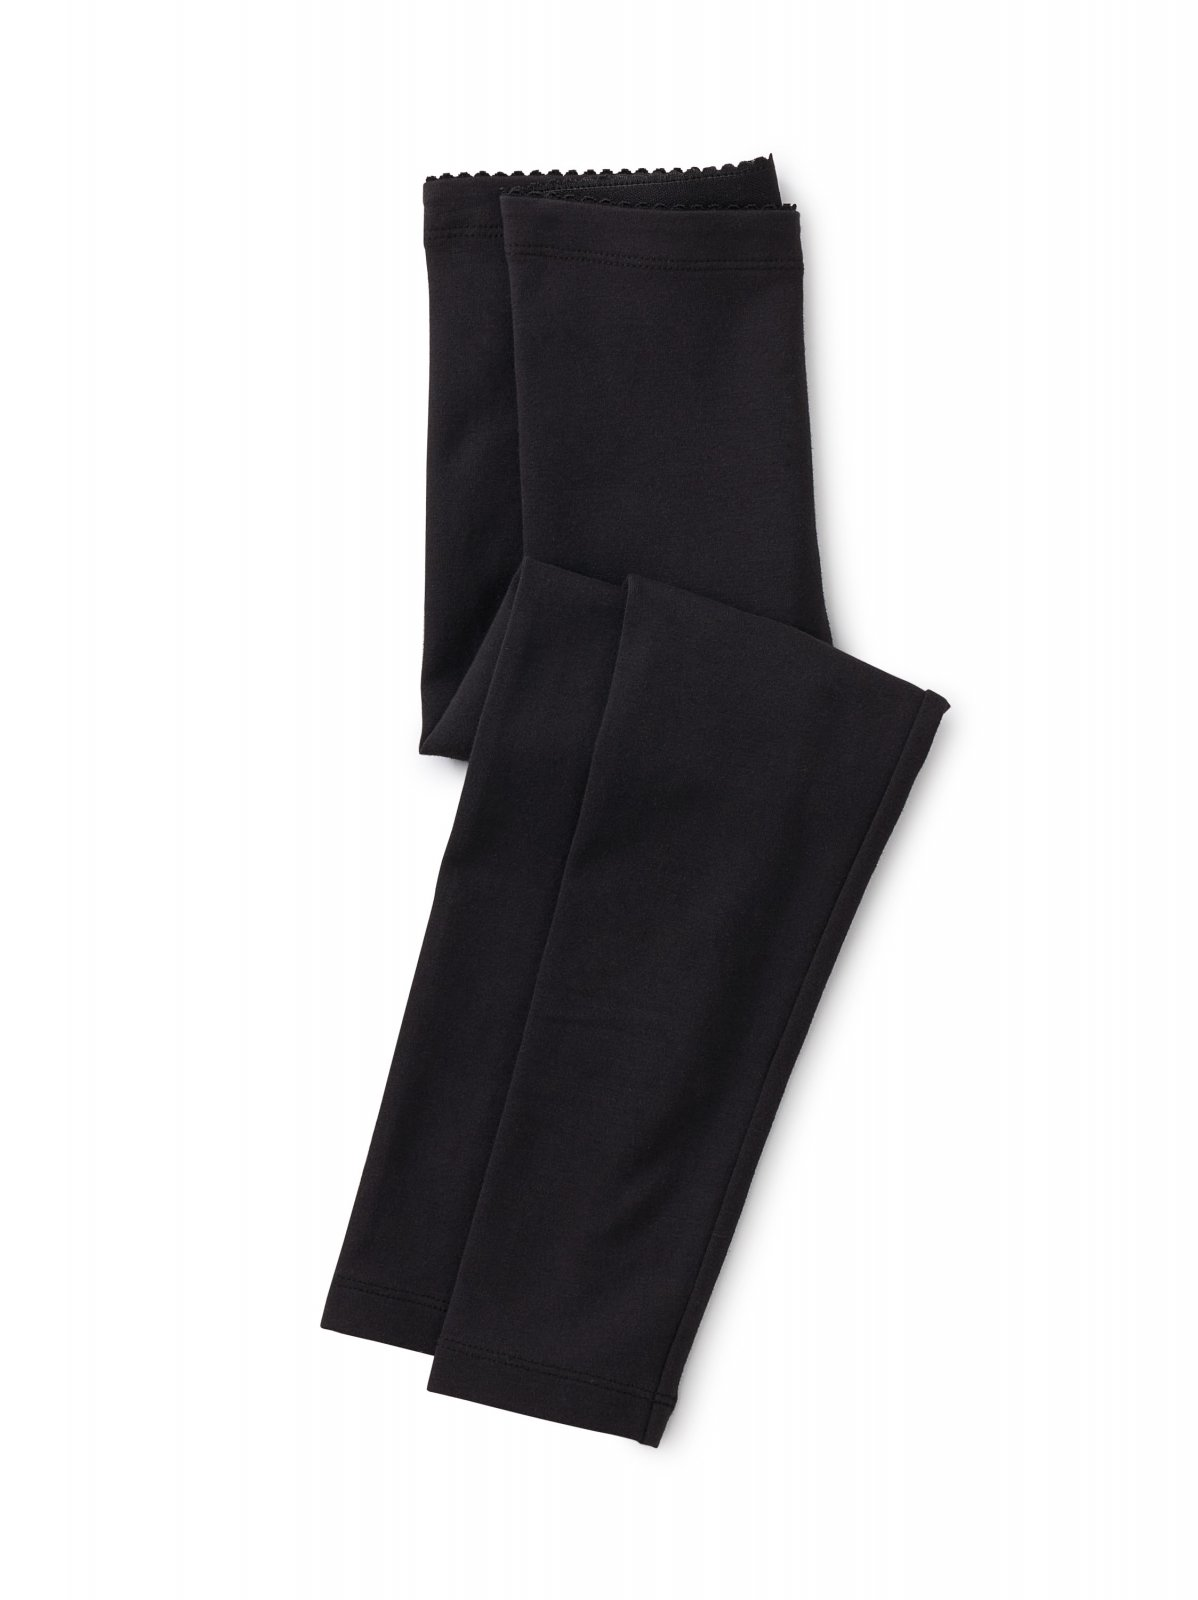 Girls Solid Leggings in Jet Black by Tea Collection